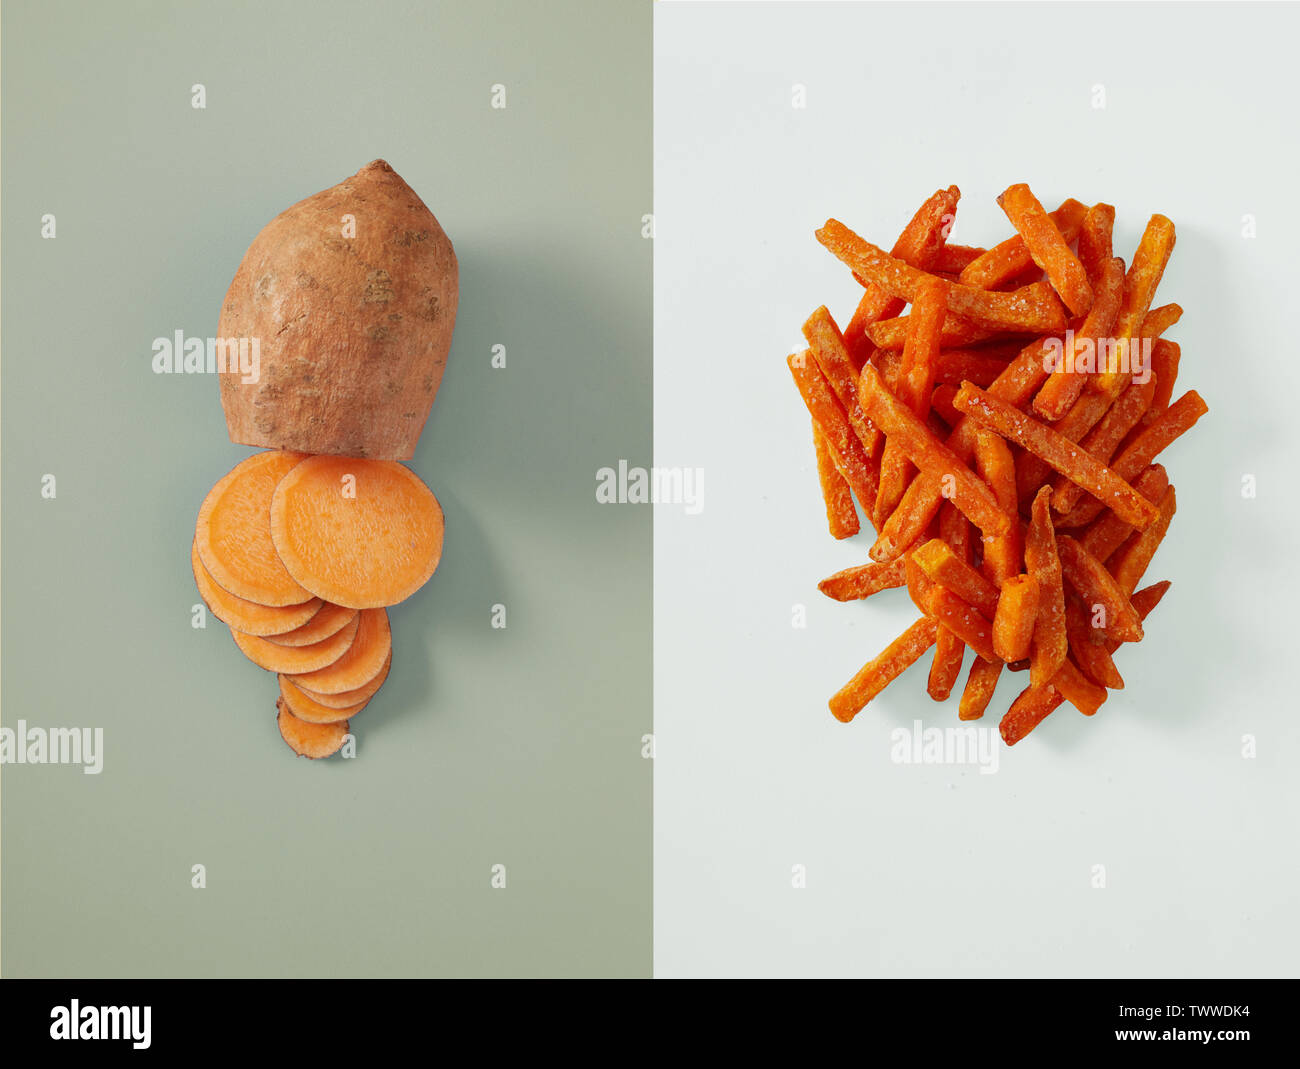 Single sliced sweet potato next to small pile of sweet potato fries on top of two tone grey background - Stock Image